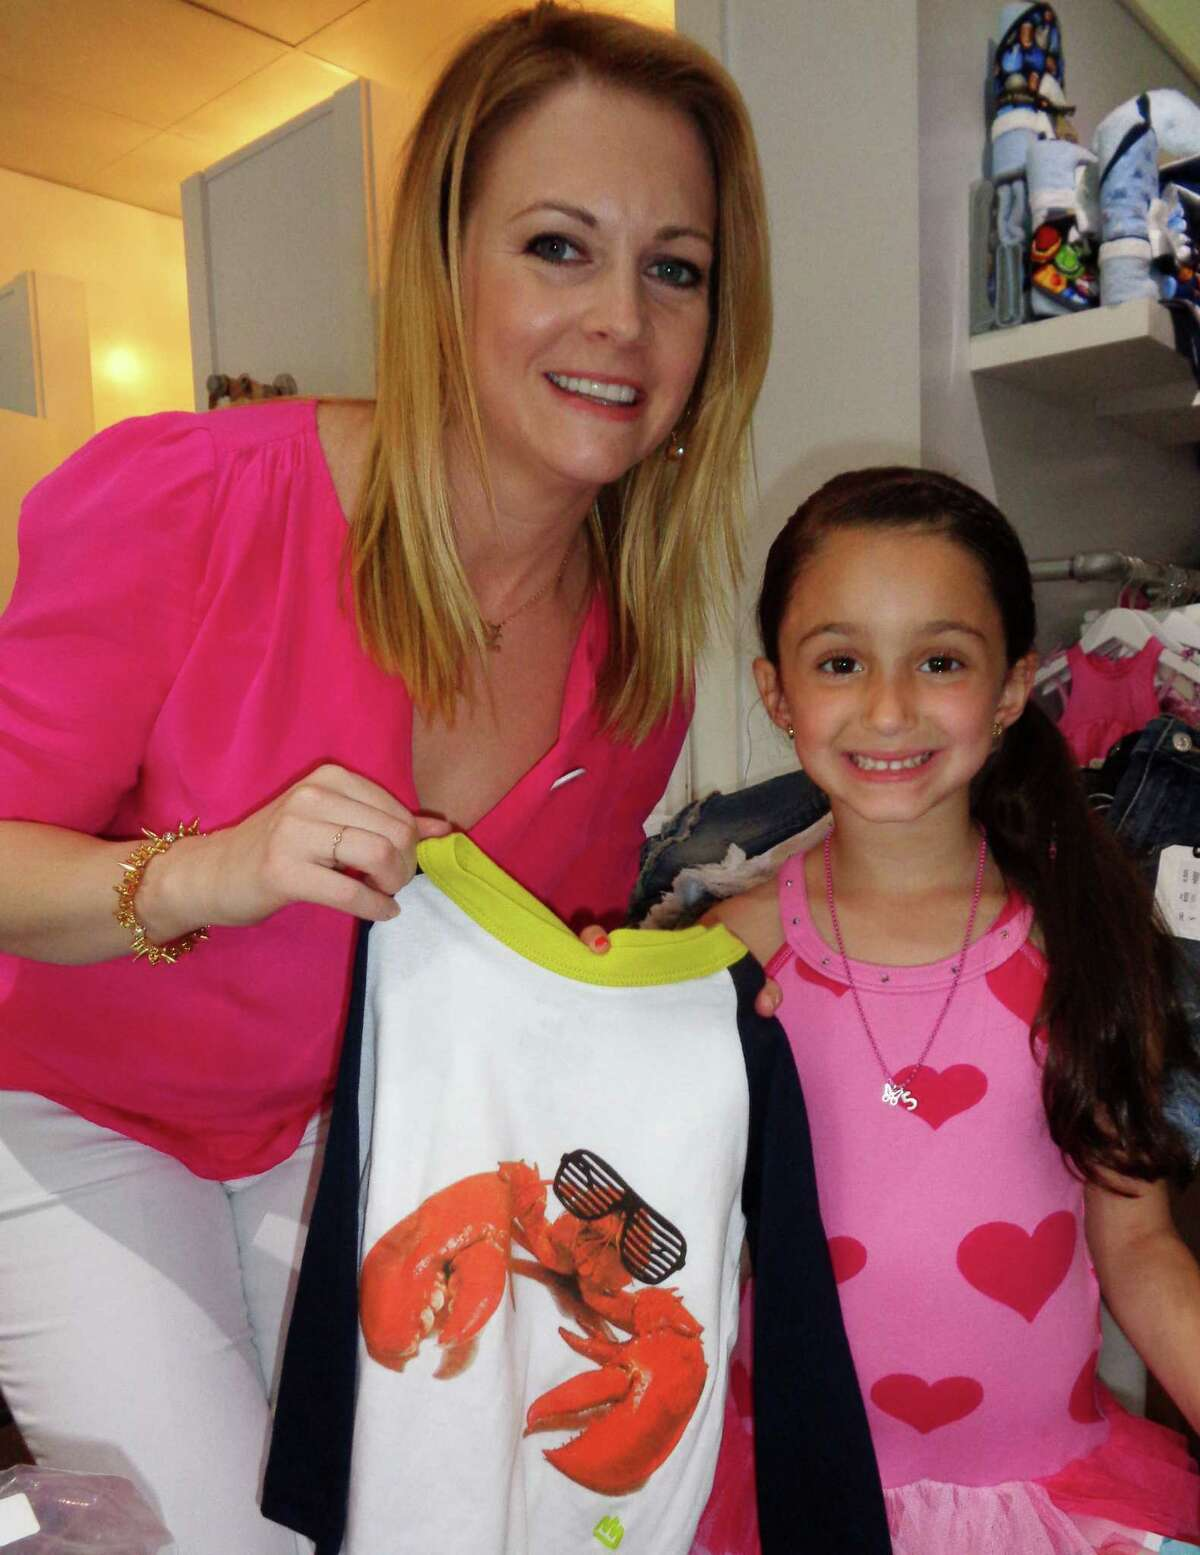 Heart and Hart: Actress Melissa Joan Hart created a boys clothing line which she showcased at Groove children's boutique Saturday, but the actress was a hit with girls who are fans of